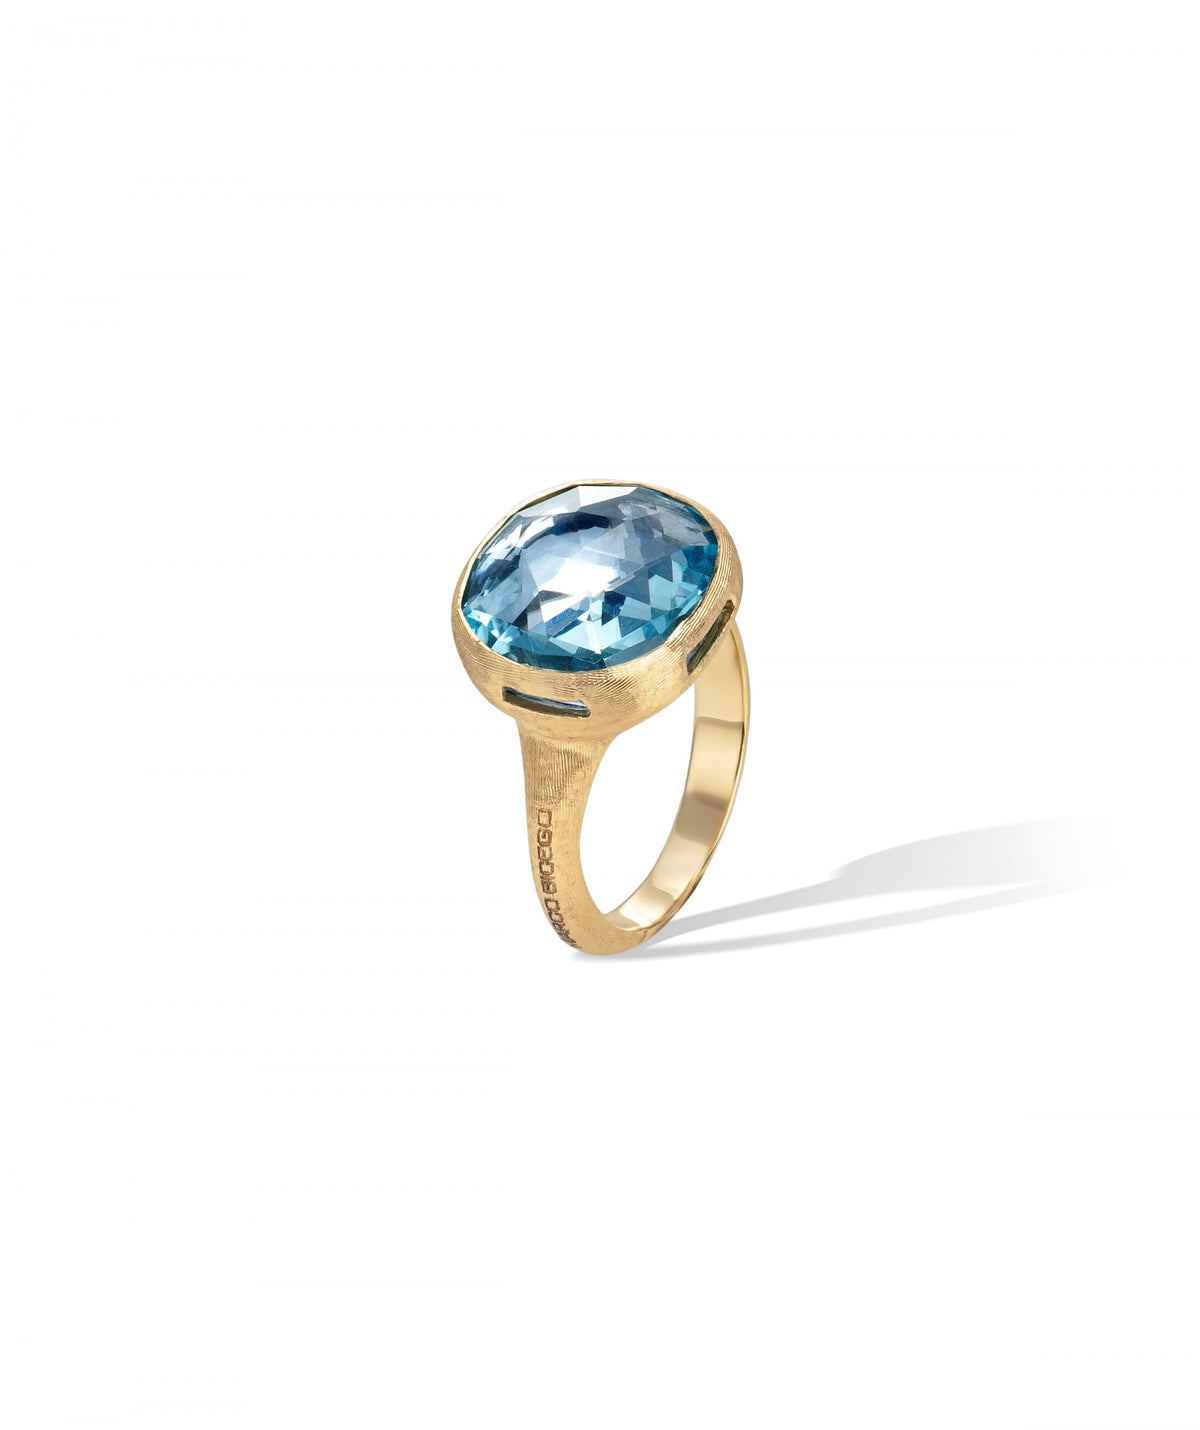 Jaipur Colour Ring in 18k Yellow Gold with Sky Blue Topaz Large